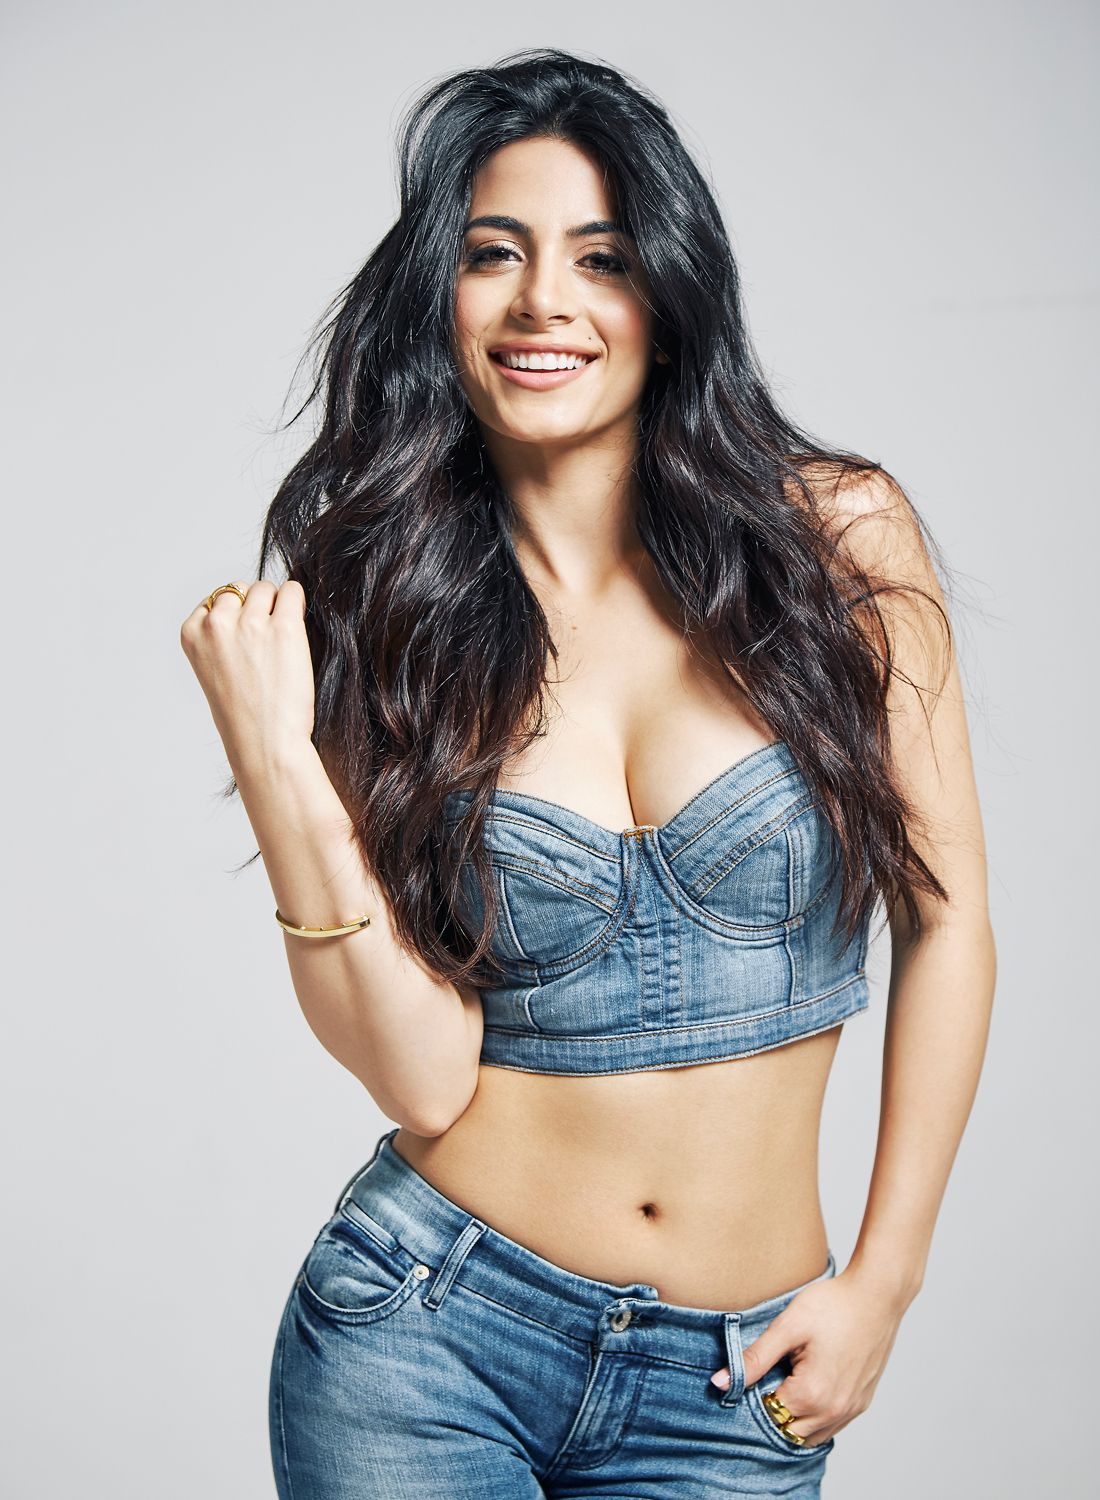 Emeraude toubia sexy pics naked (16 photo), Feet Celebrites foto